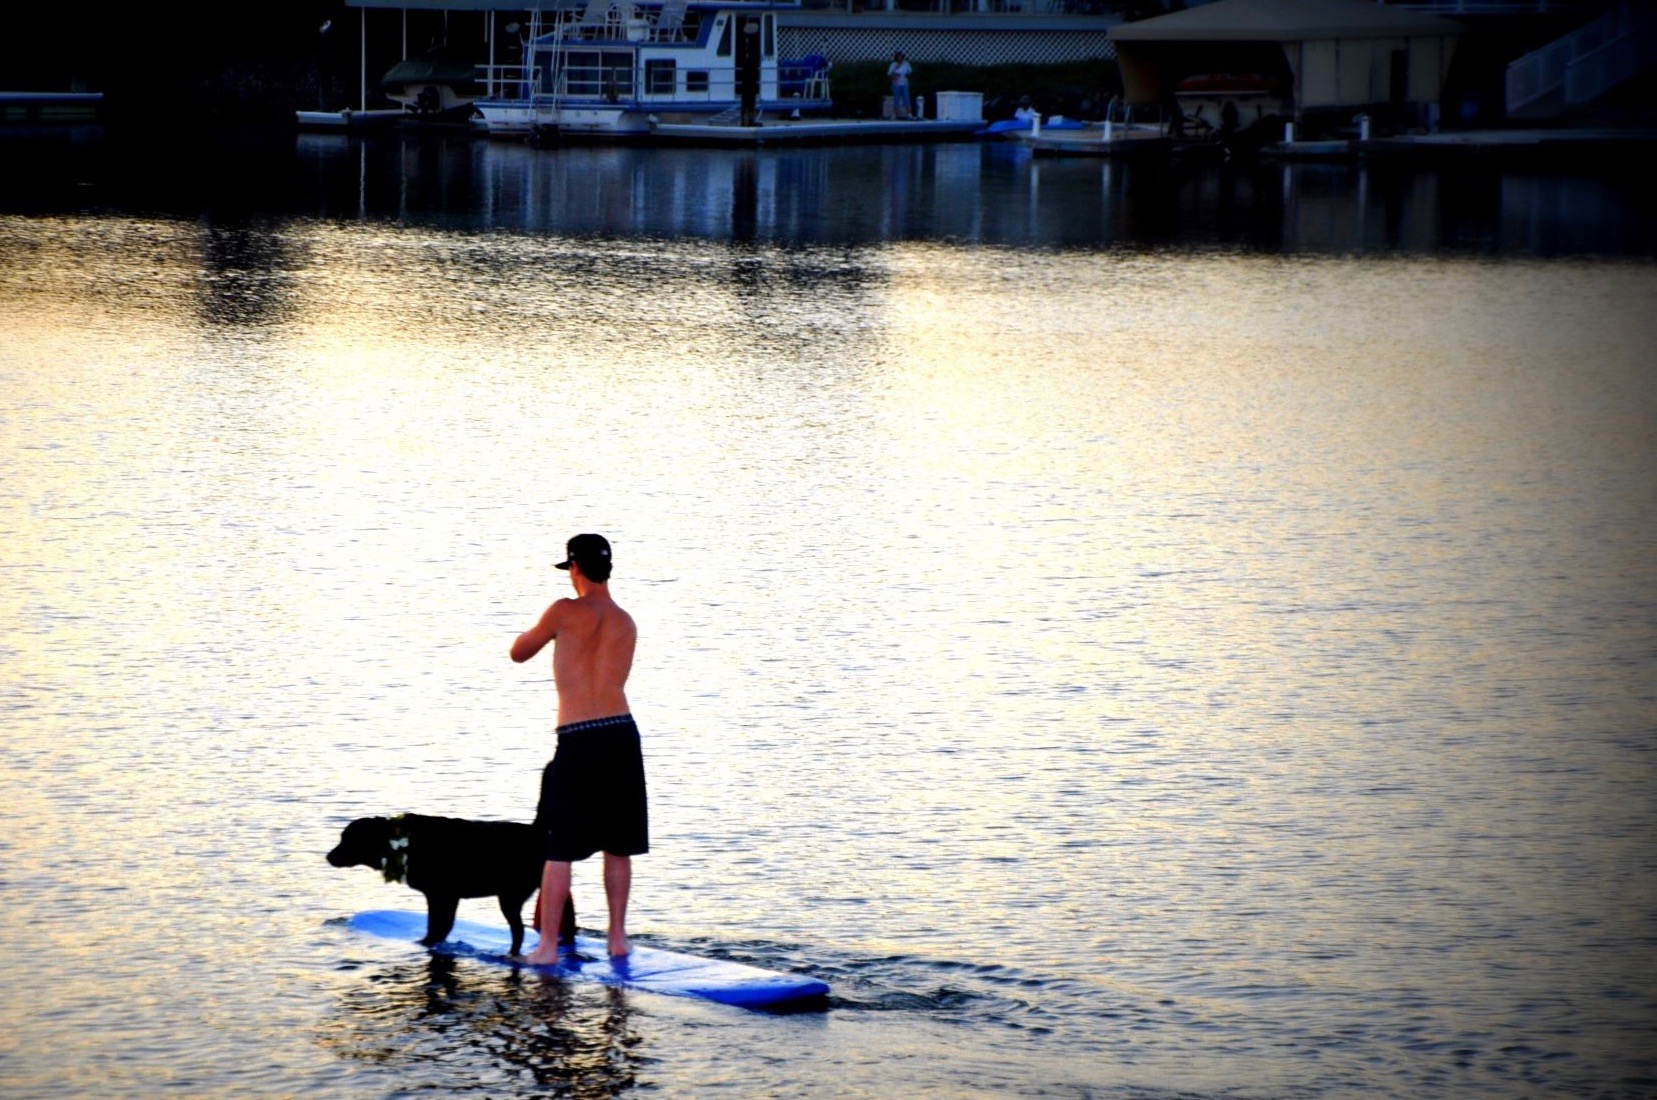 Paddle boarding with a friend